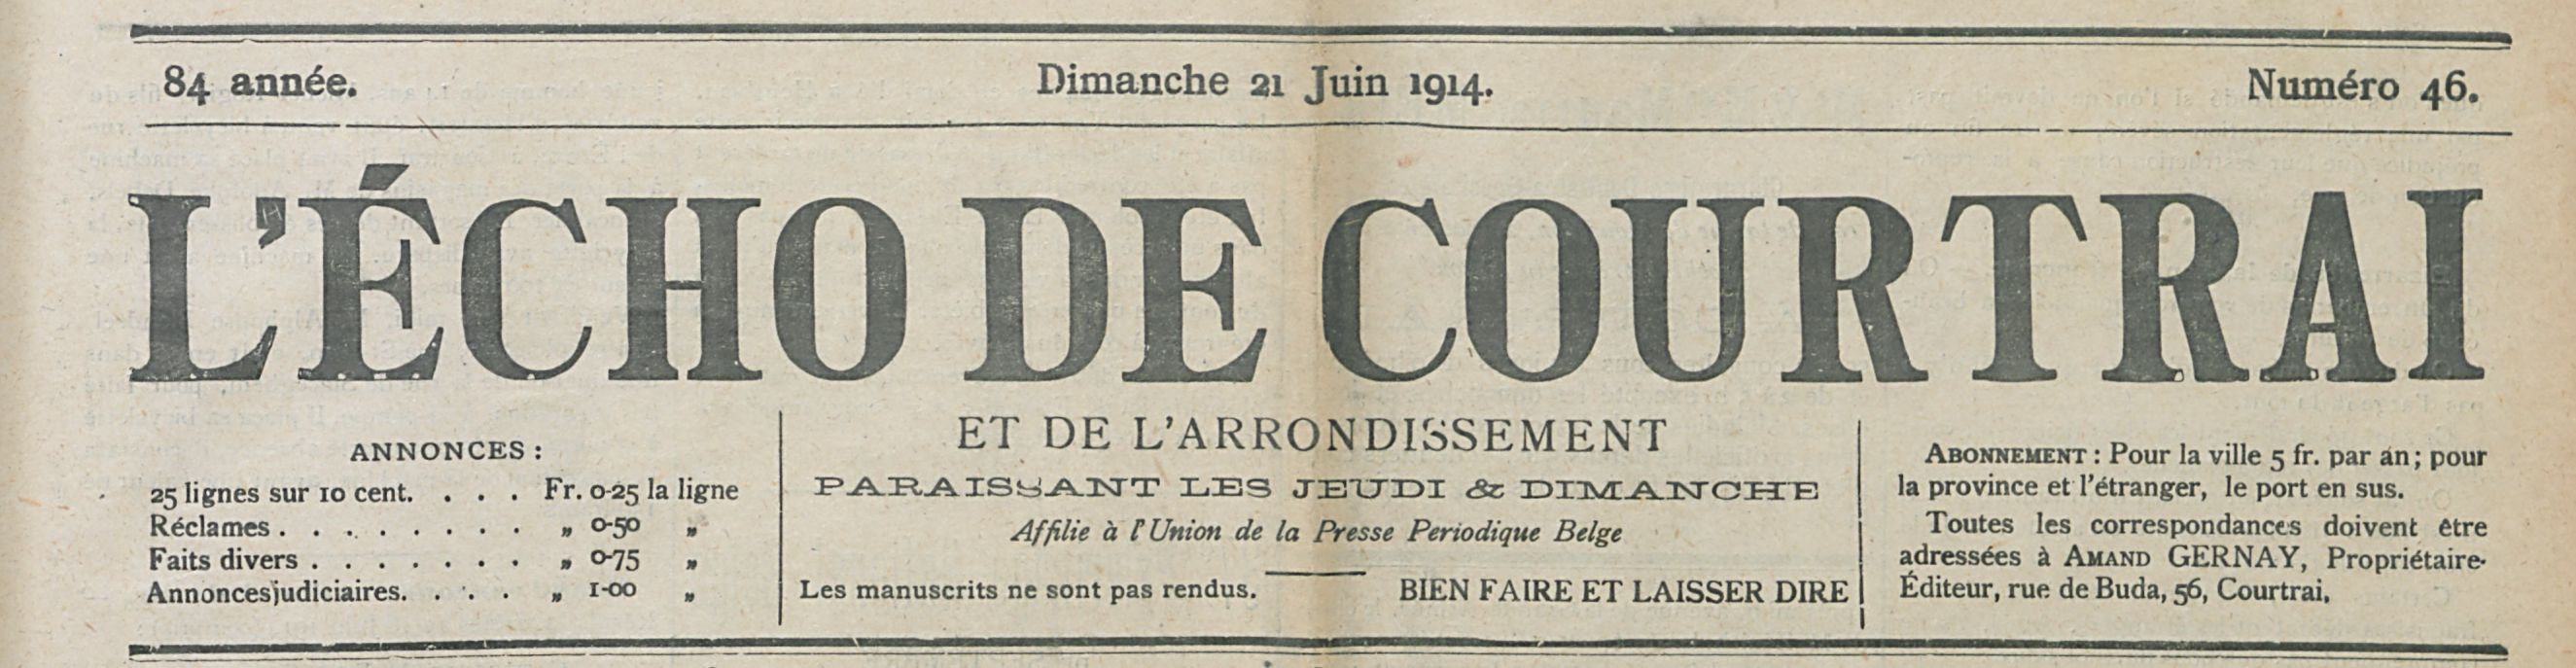 L'ECHO DE COURTRAI